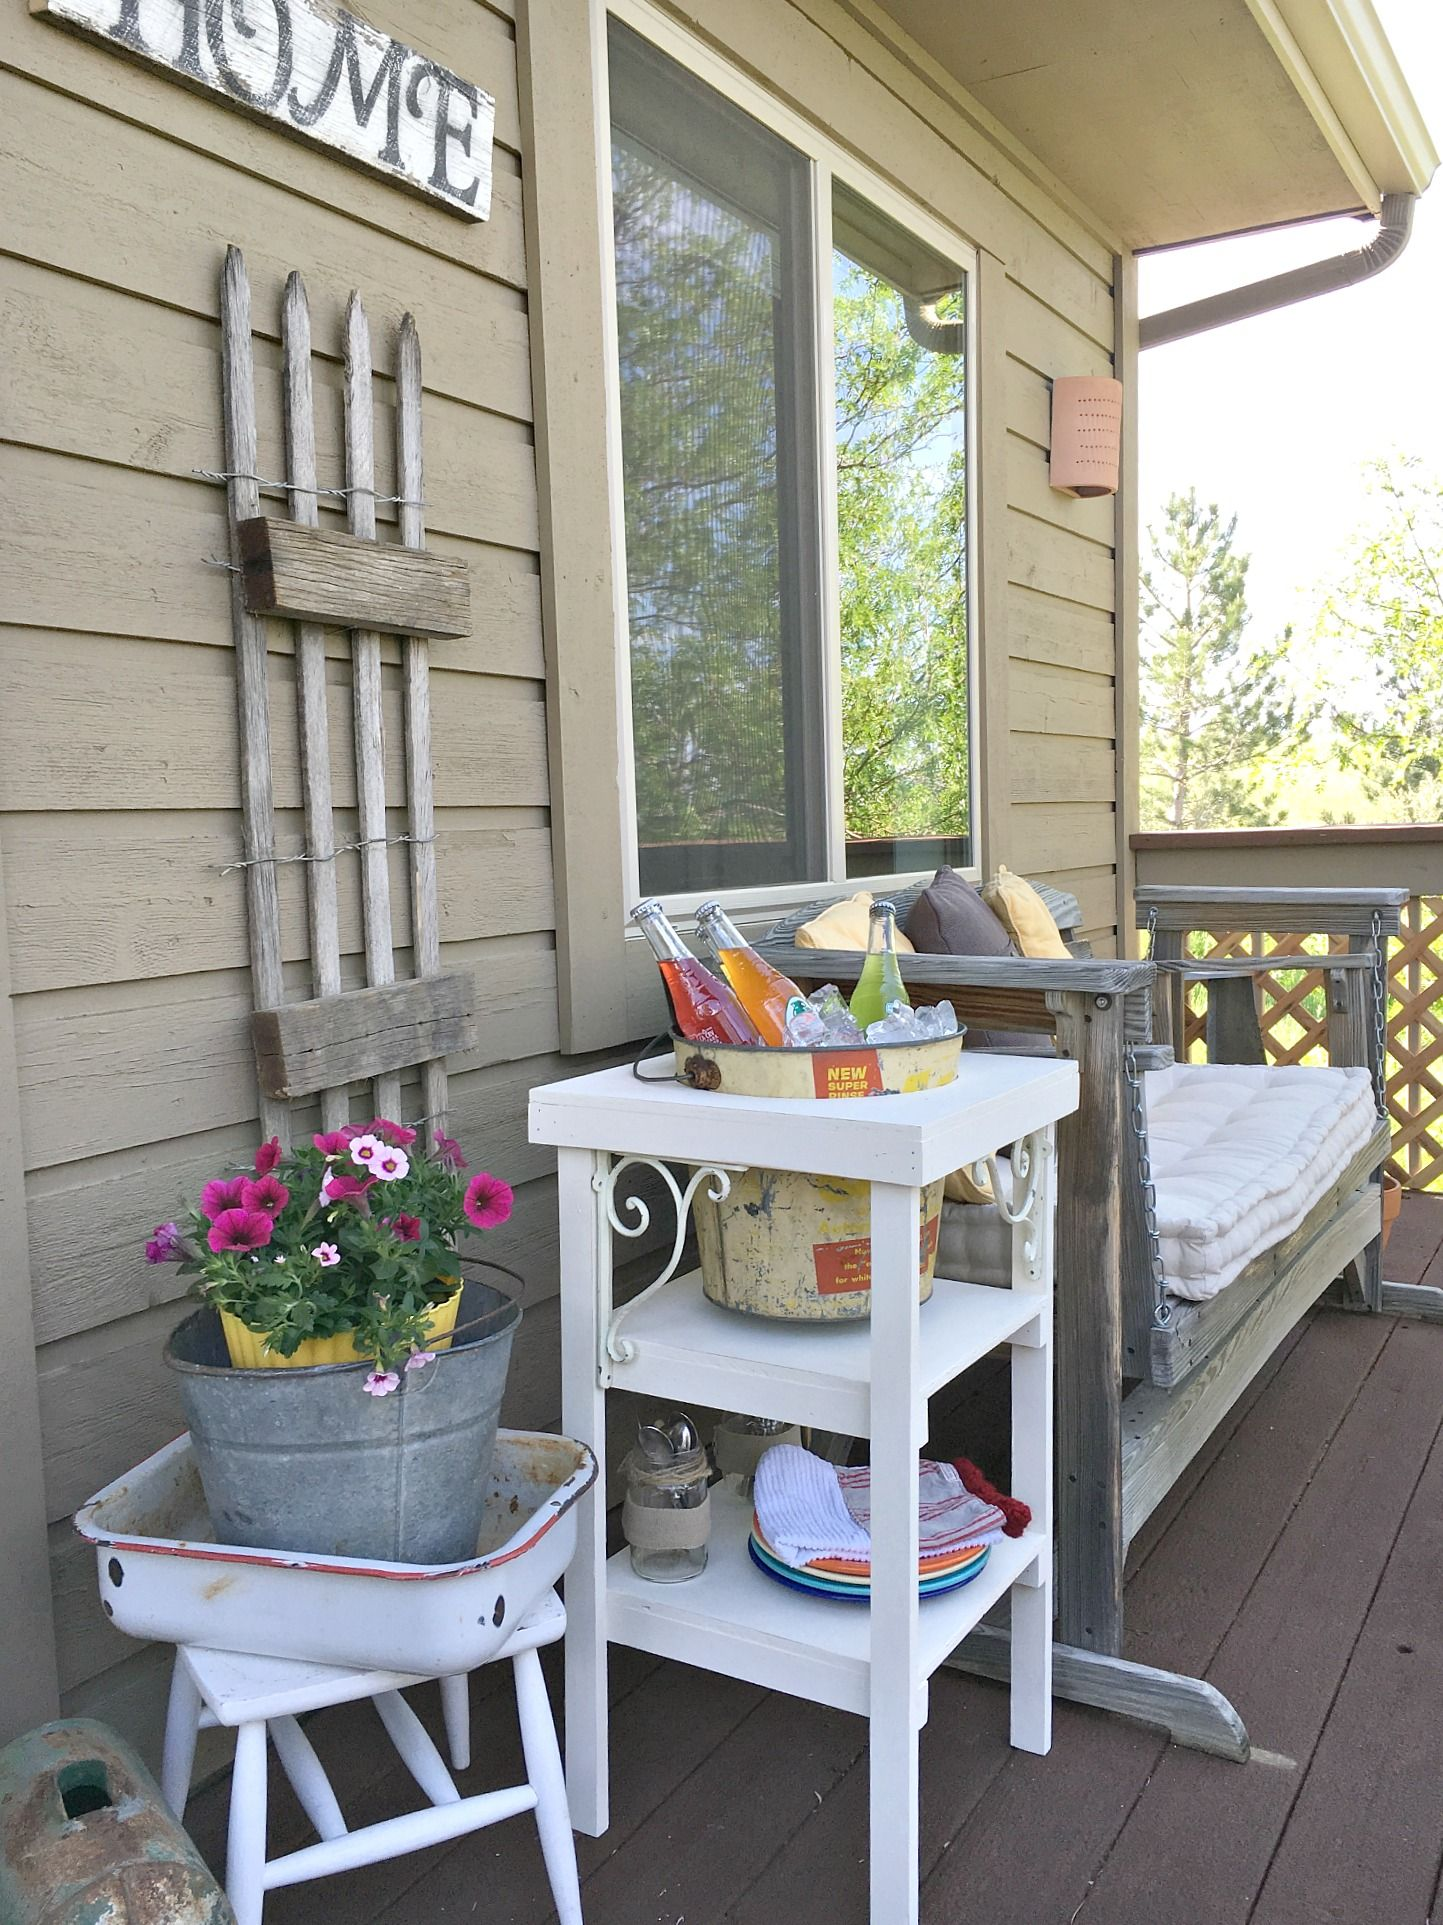 DIY Beverage Station & Summer Patio Decor Patio